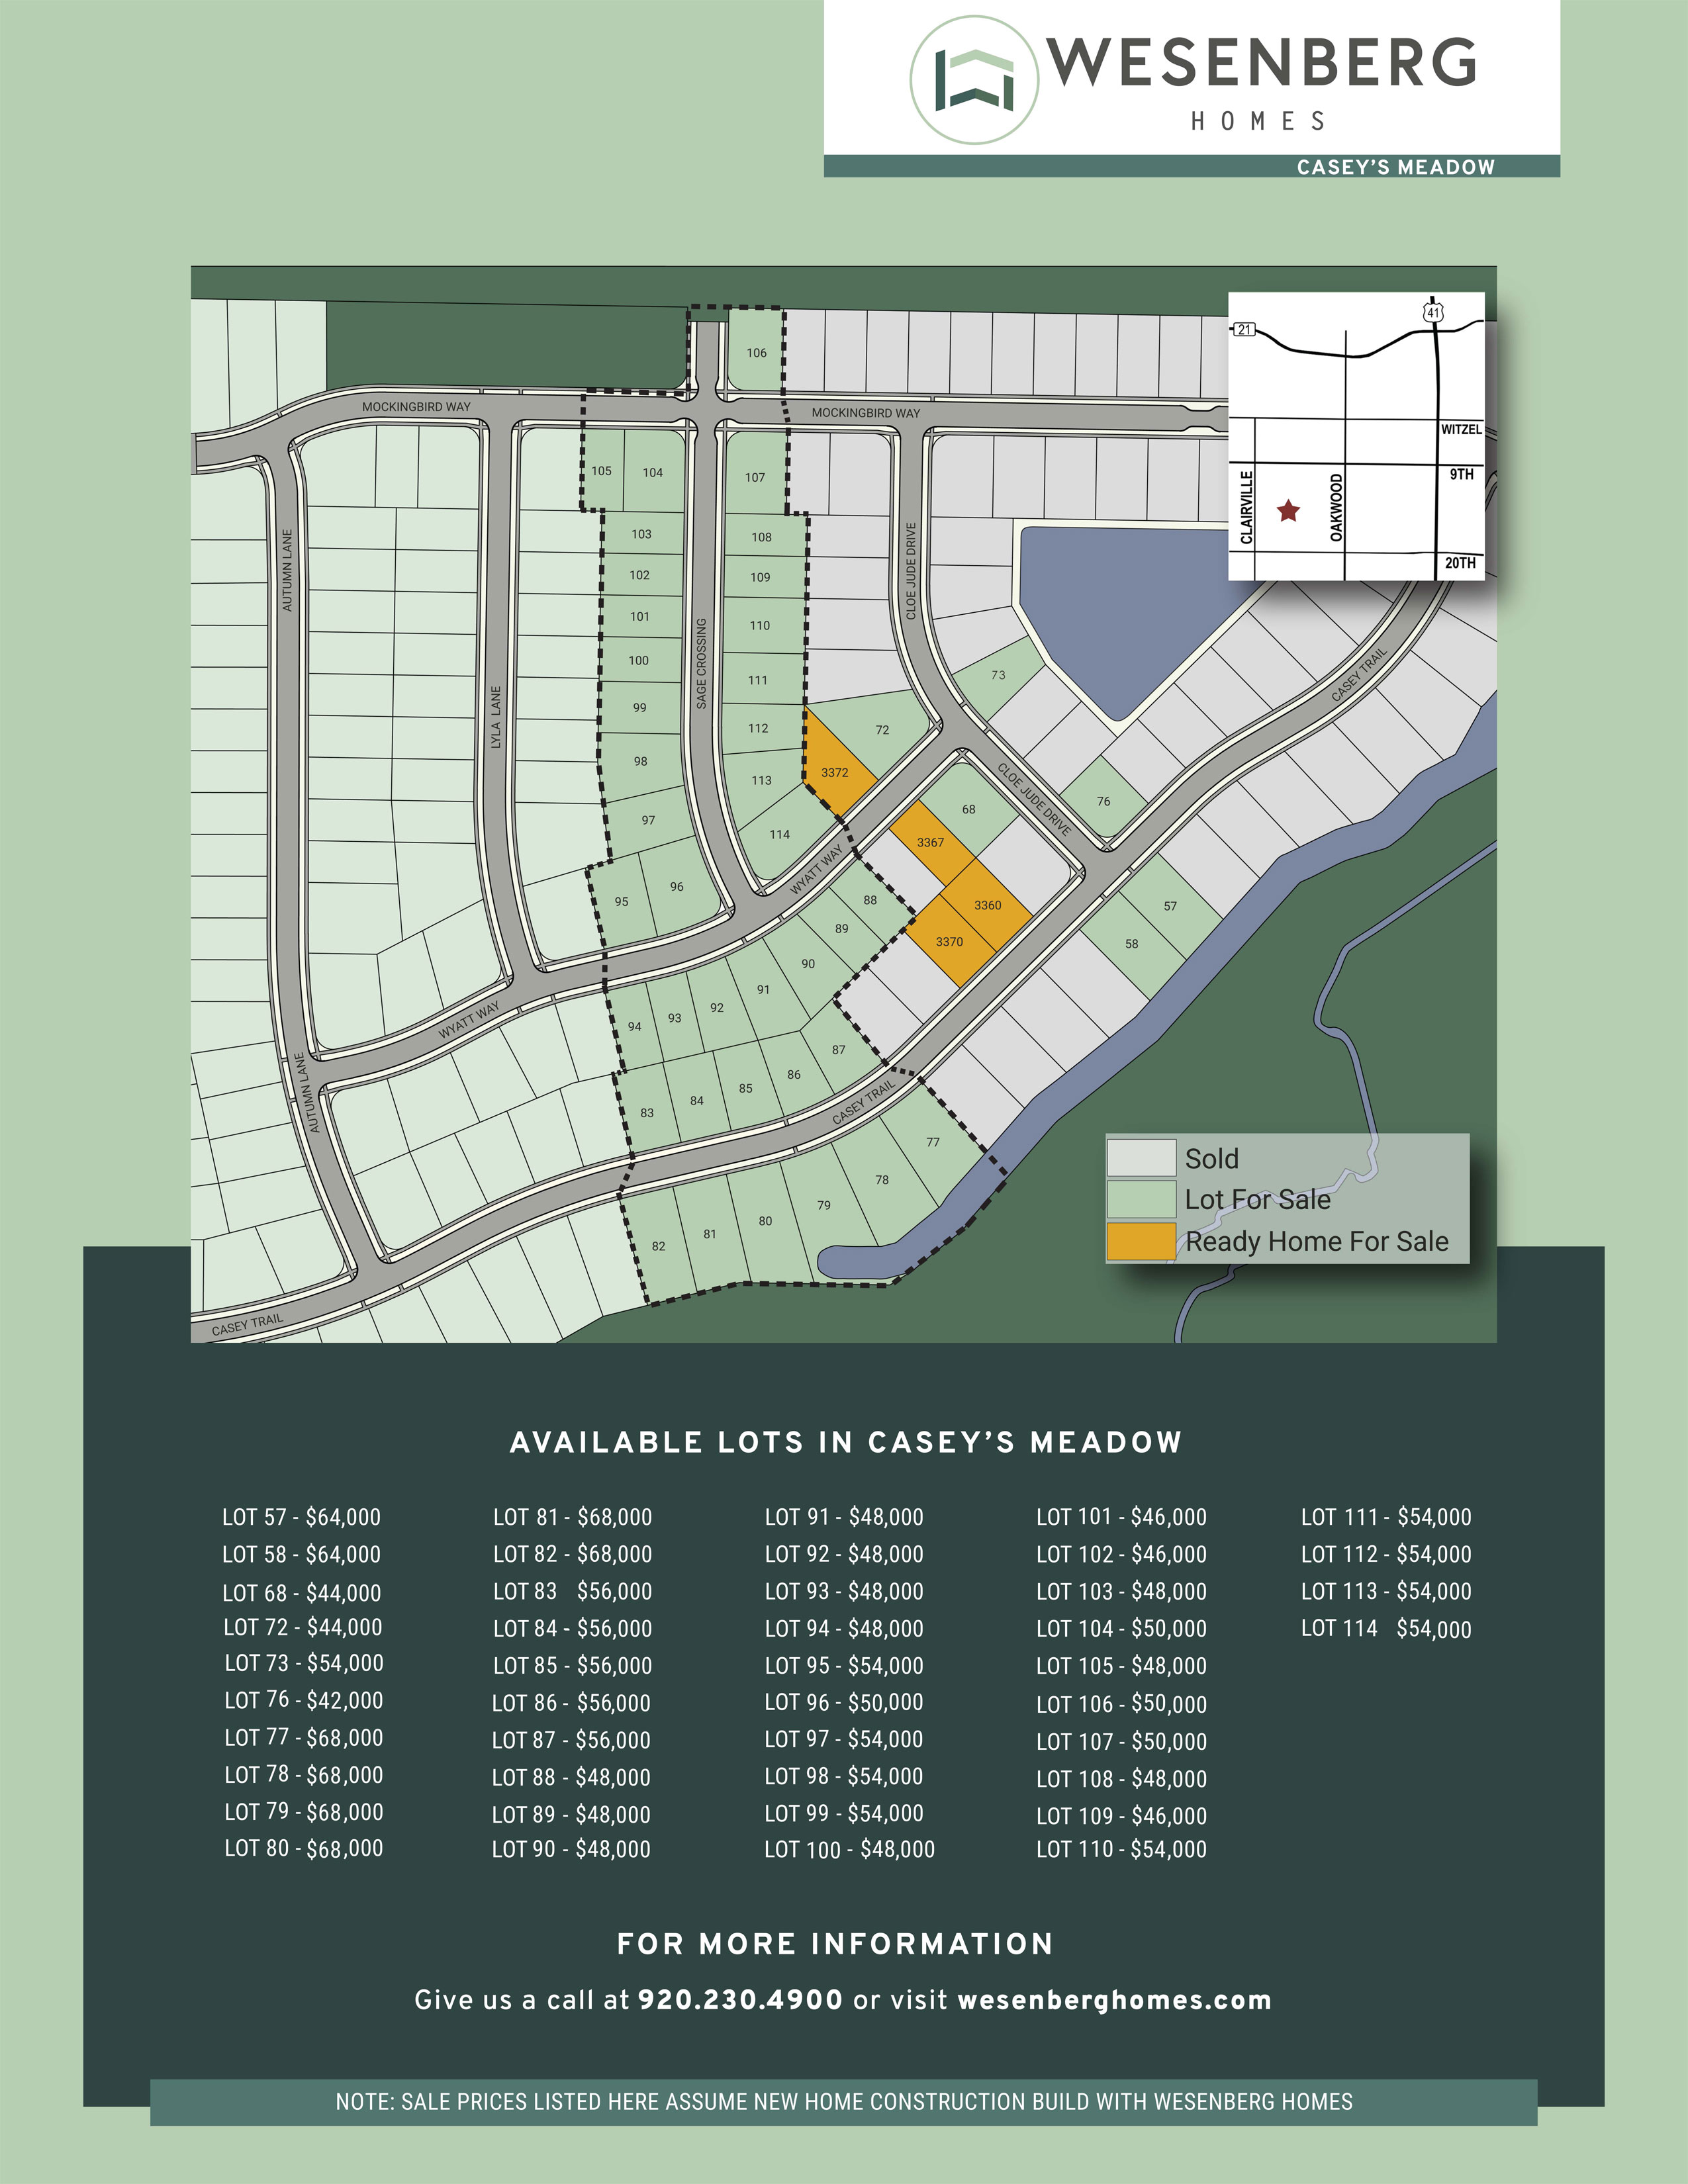 Homes and Lots for Sale in Oshkosh - Casey's Meadow